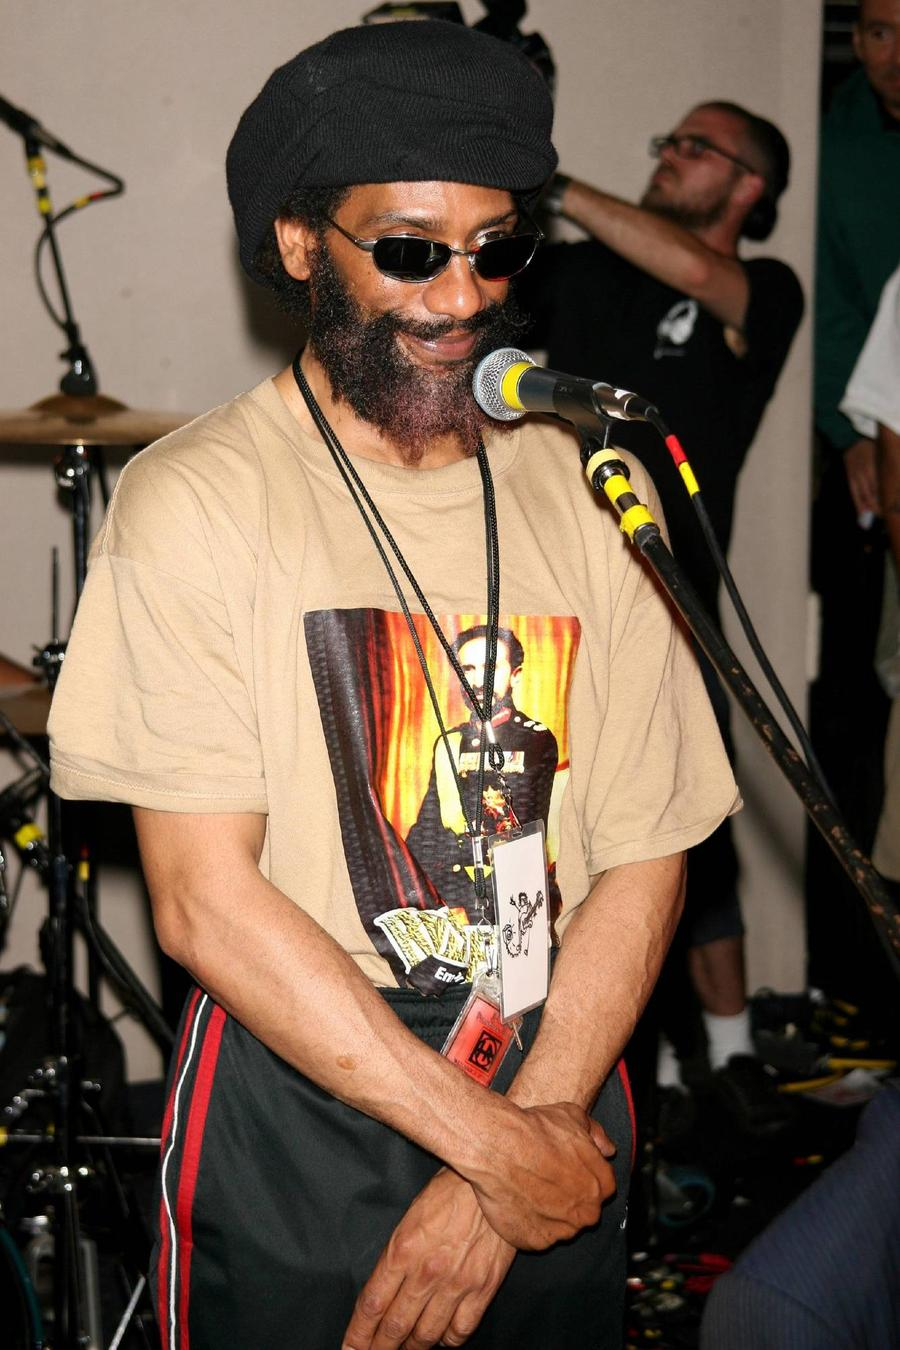 Bad Brains Singer To Undergo Surgery